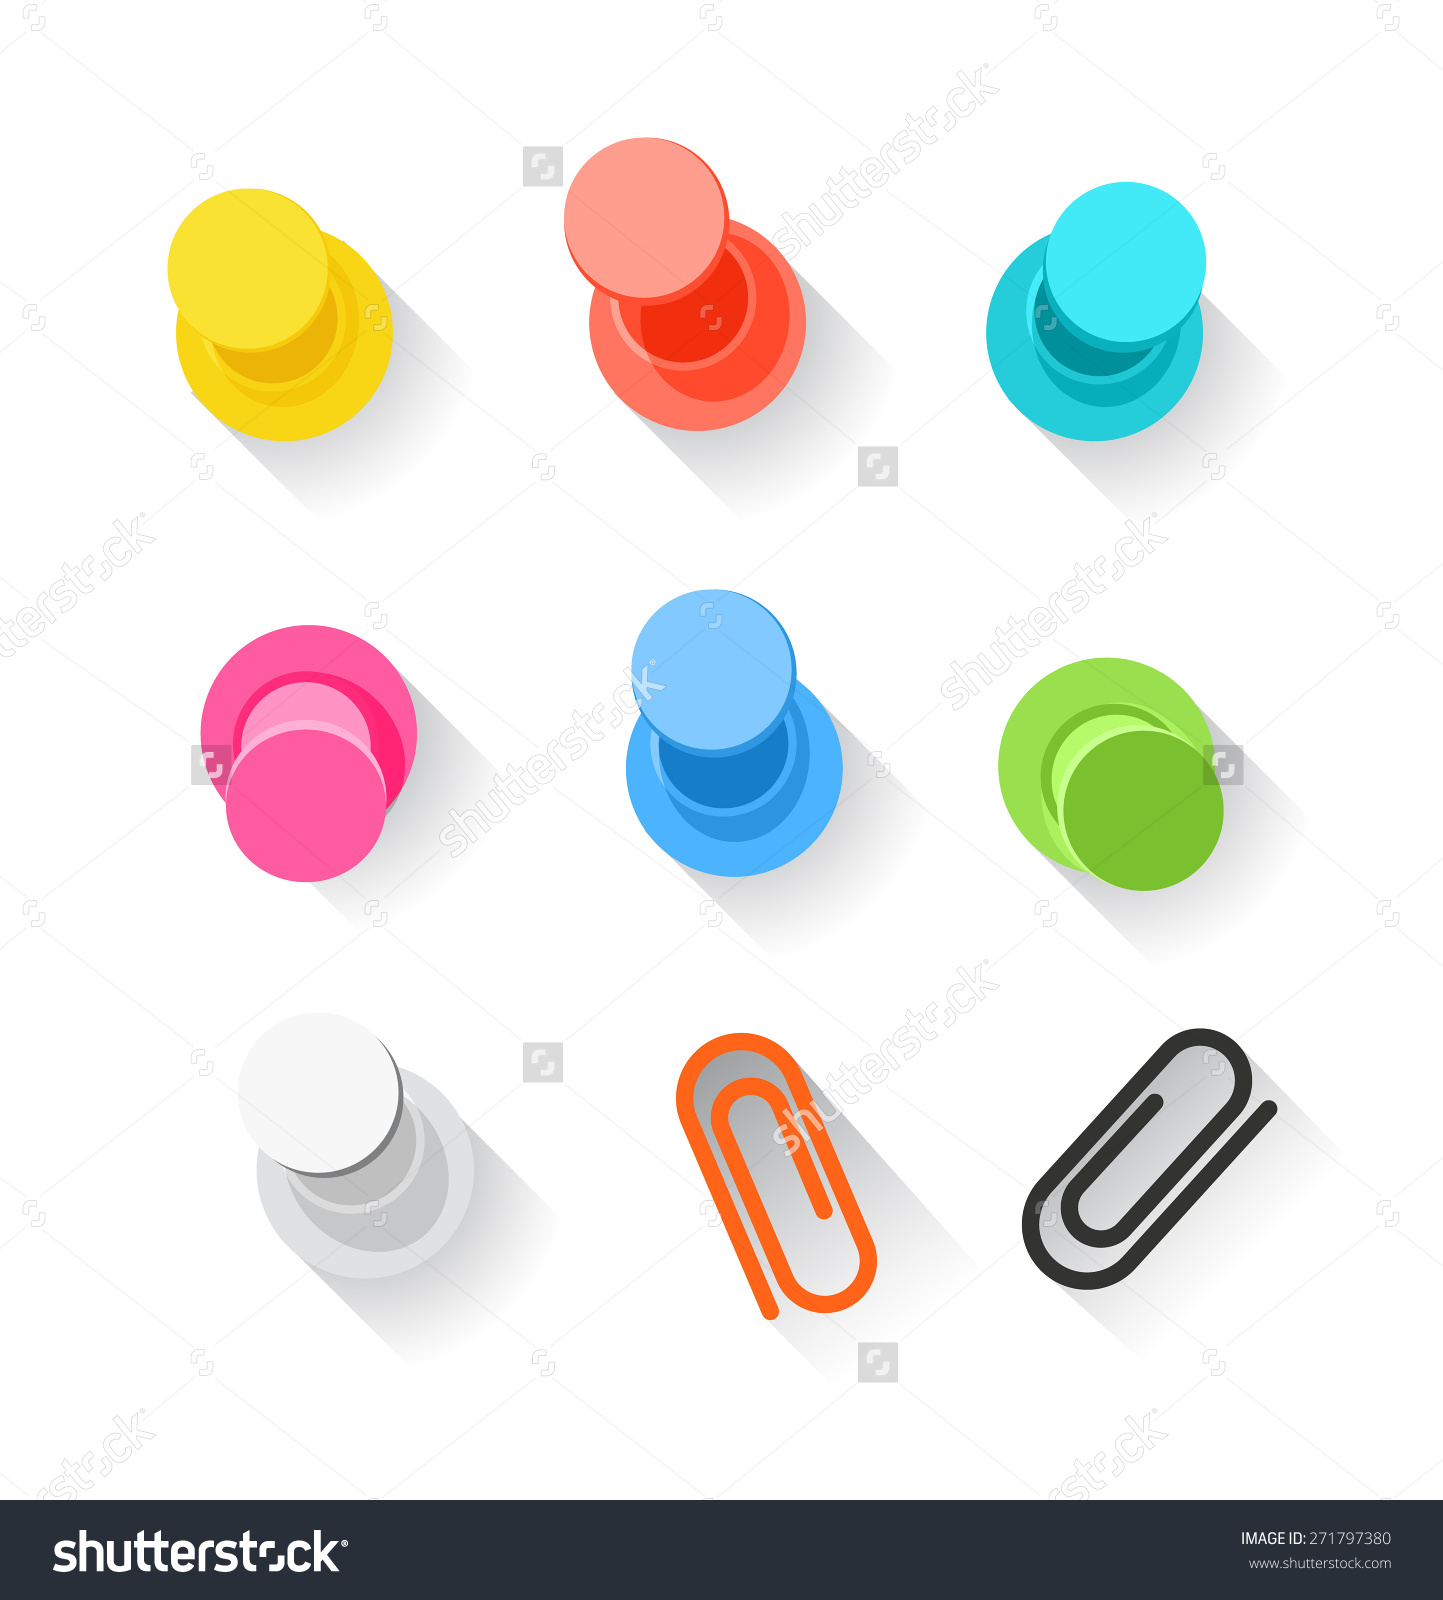 Color Pins And Clips Collection Isolated On White. Flat Design.